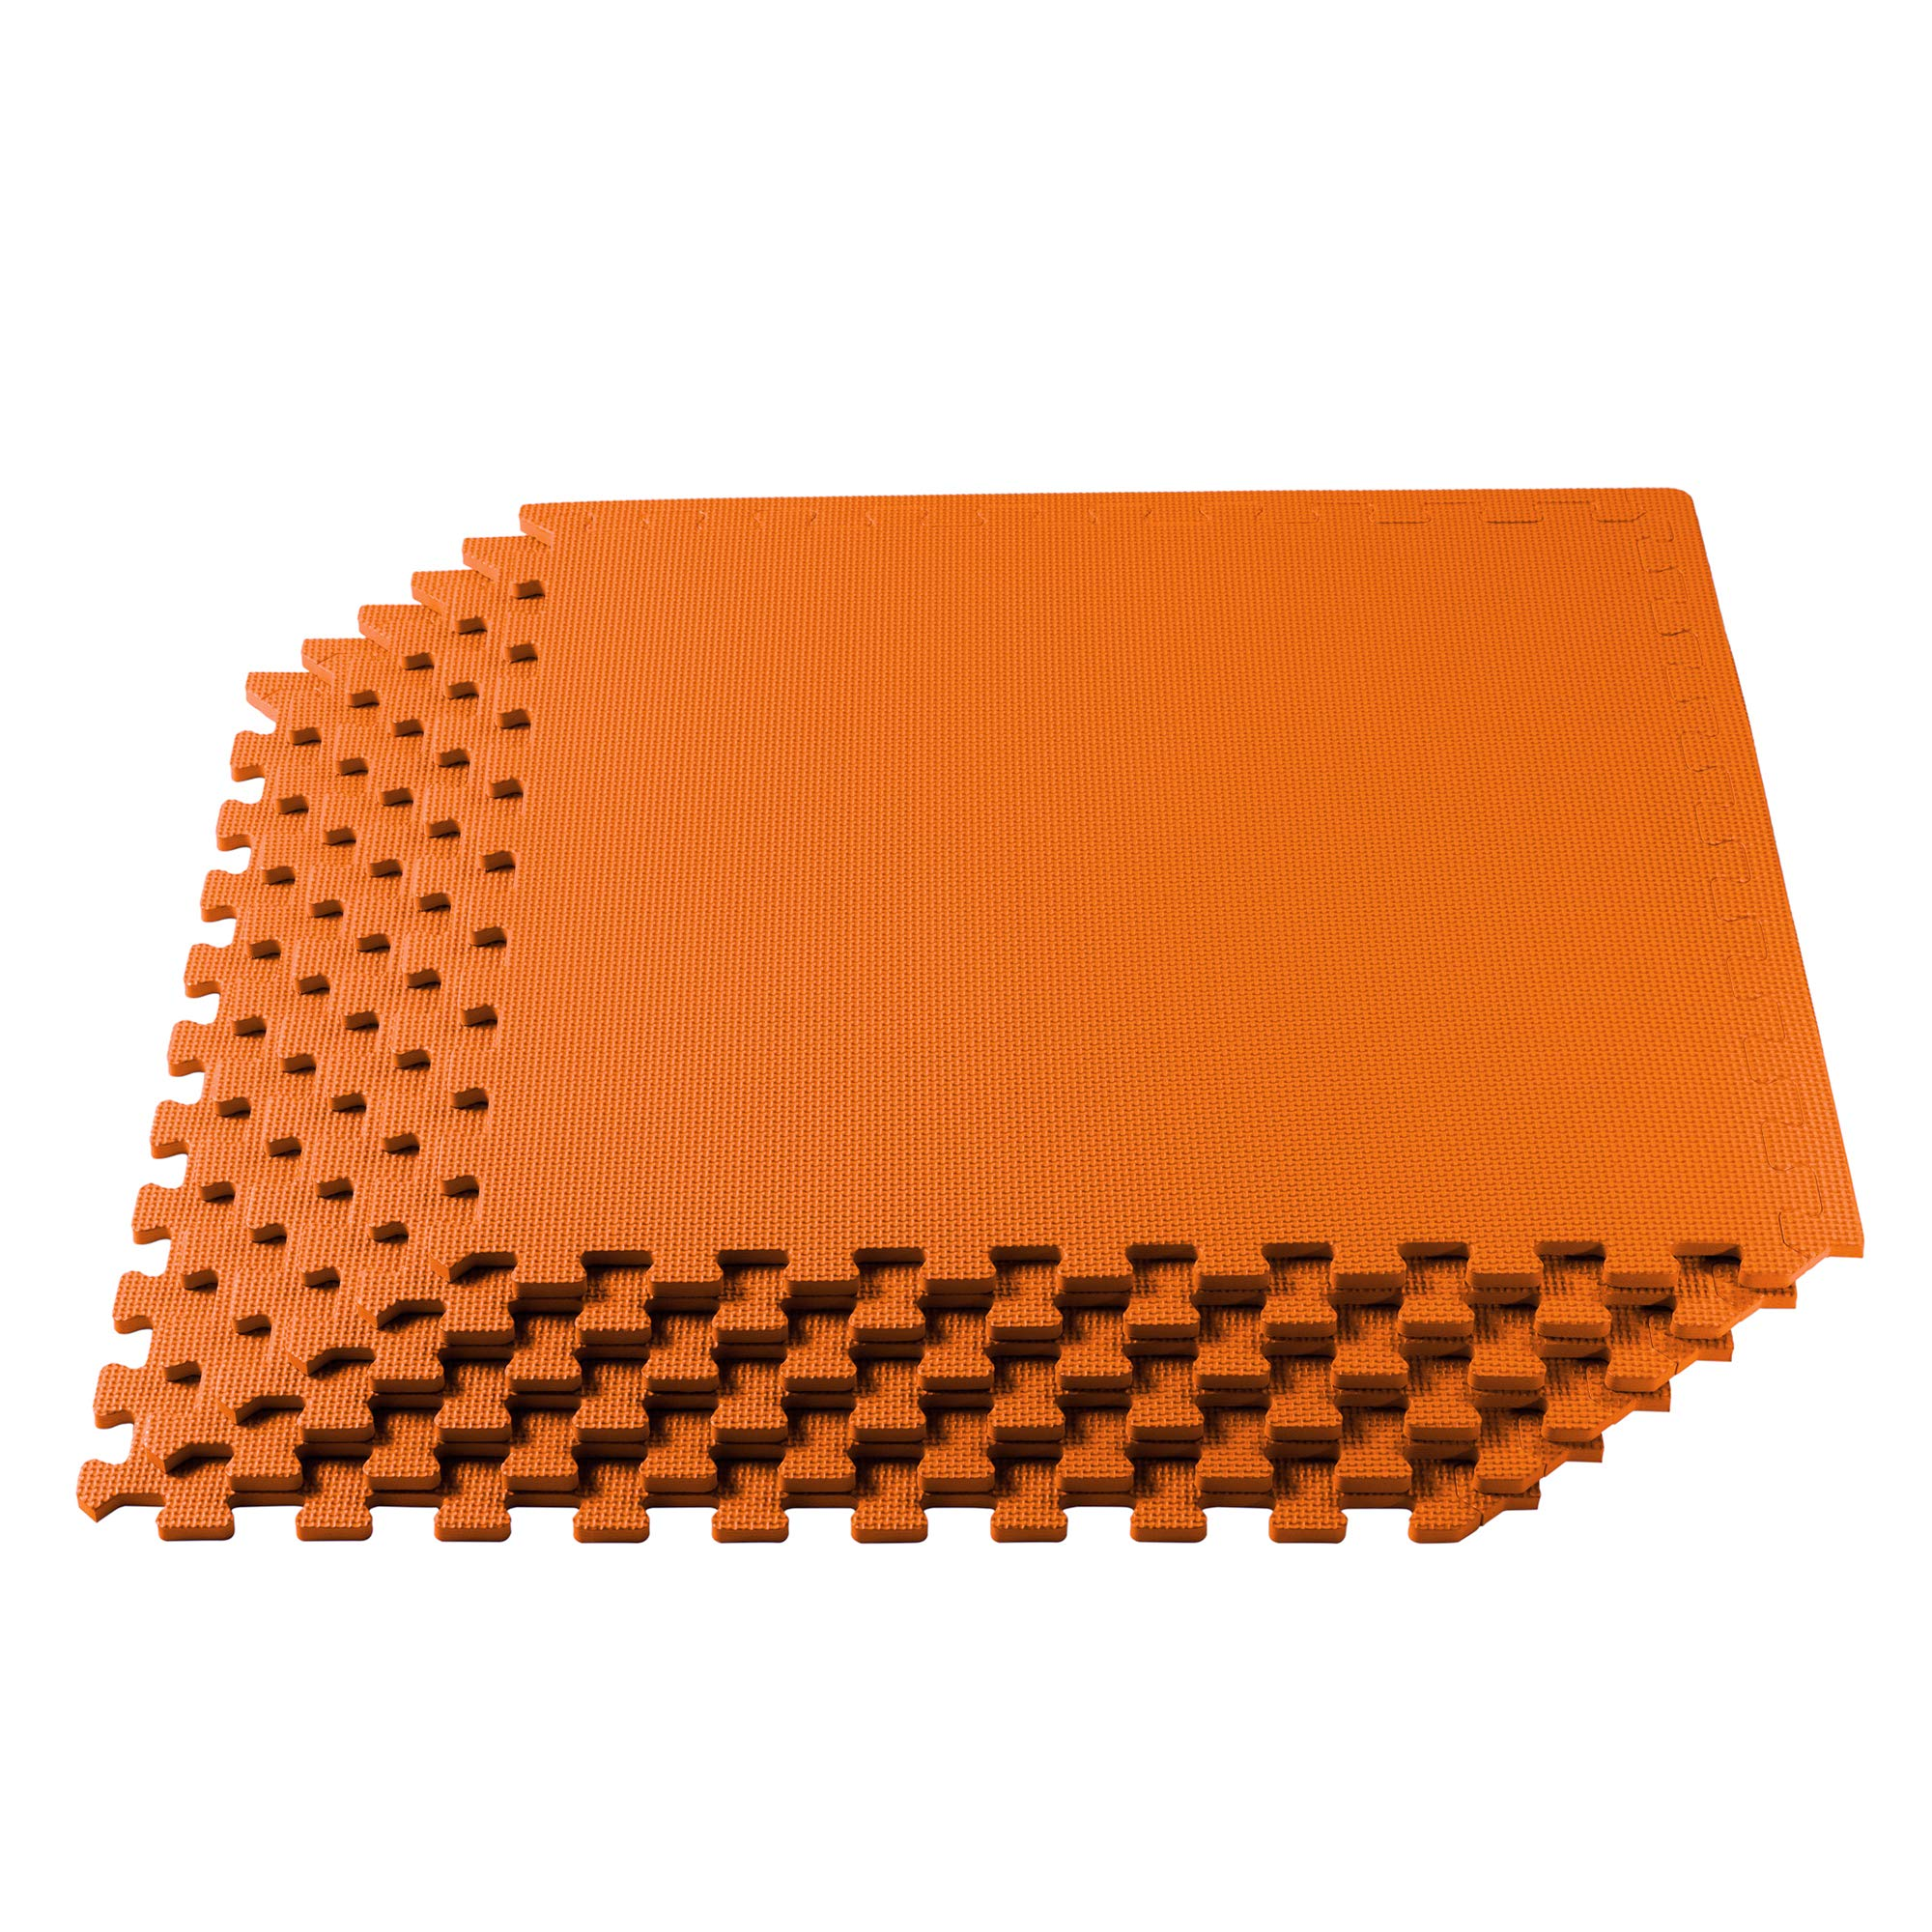 We Sell Mats Multipurpose Exercise Floor Mat with EVA Foam, Interlocking Tiles, Anti-Fatigue, for Home or Gym, 16 Square Feet (4 Tiles), 24 x 24 x 3/8 Inches, Orange